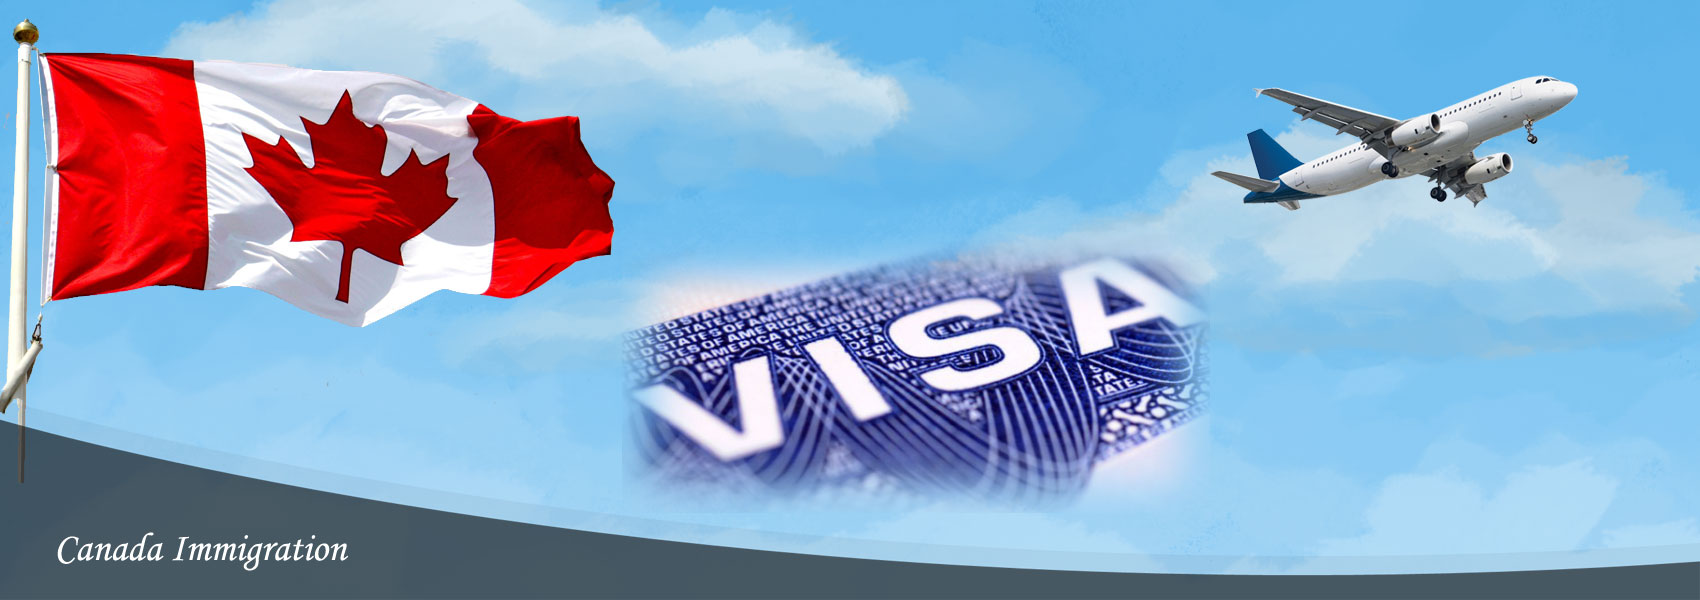 Canada-Immigration-Permanent-Resident